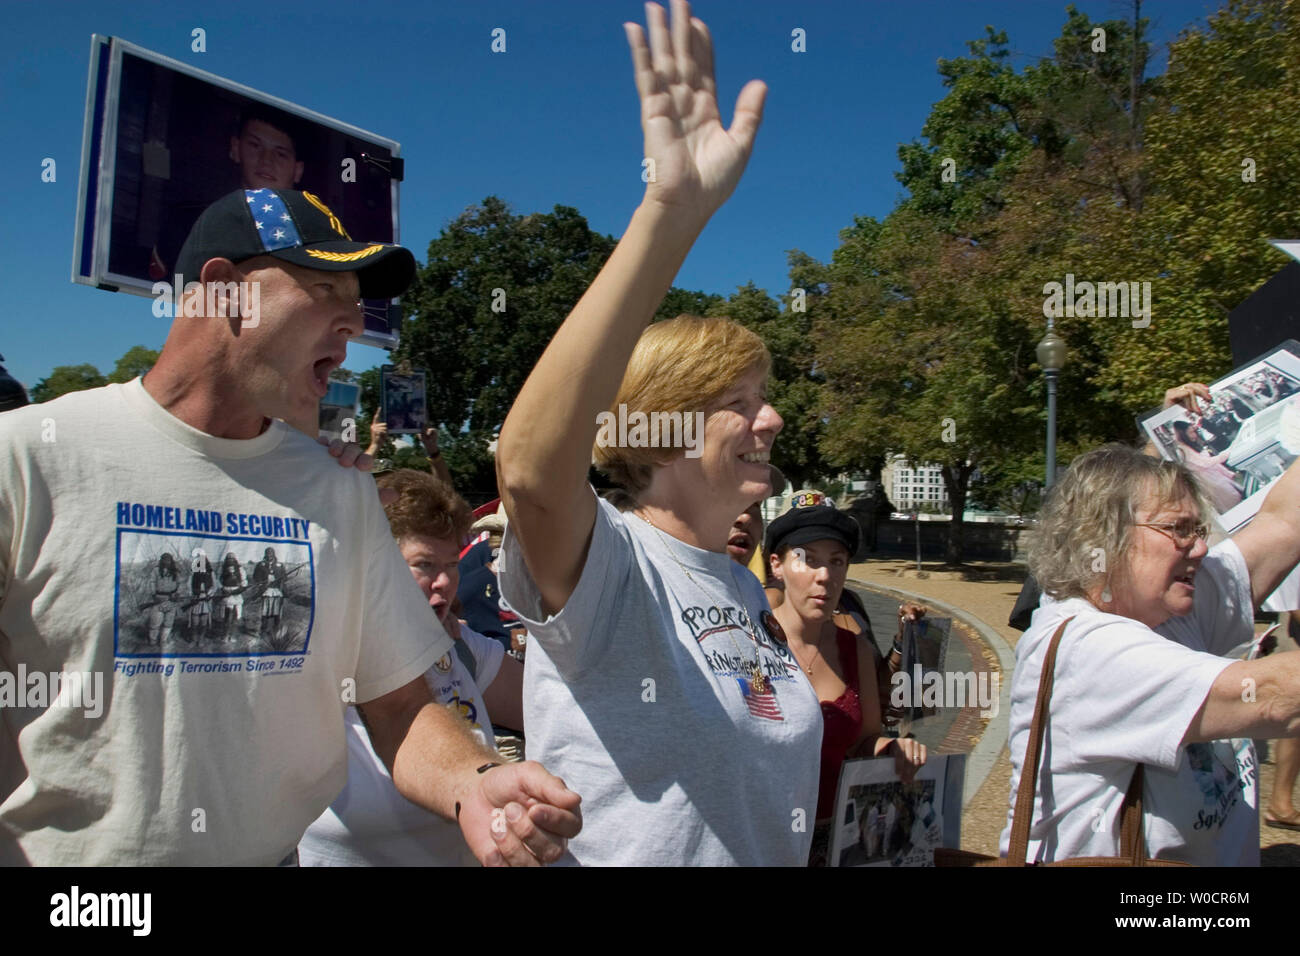 Anti-war activist Cindy Sheehan (C) waves to supporters with